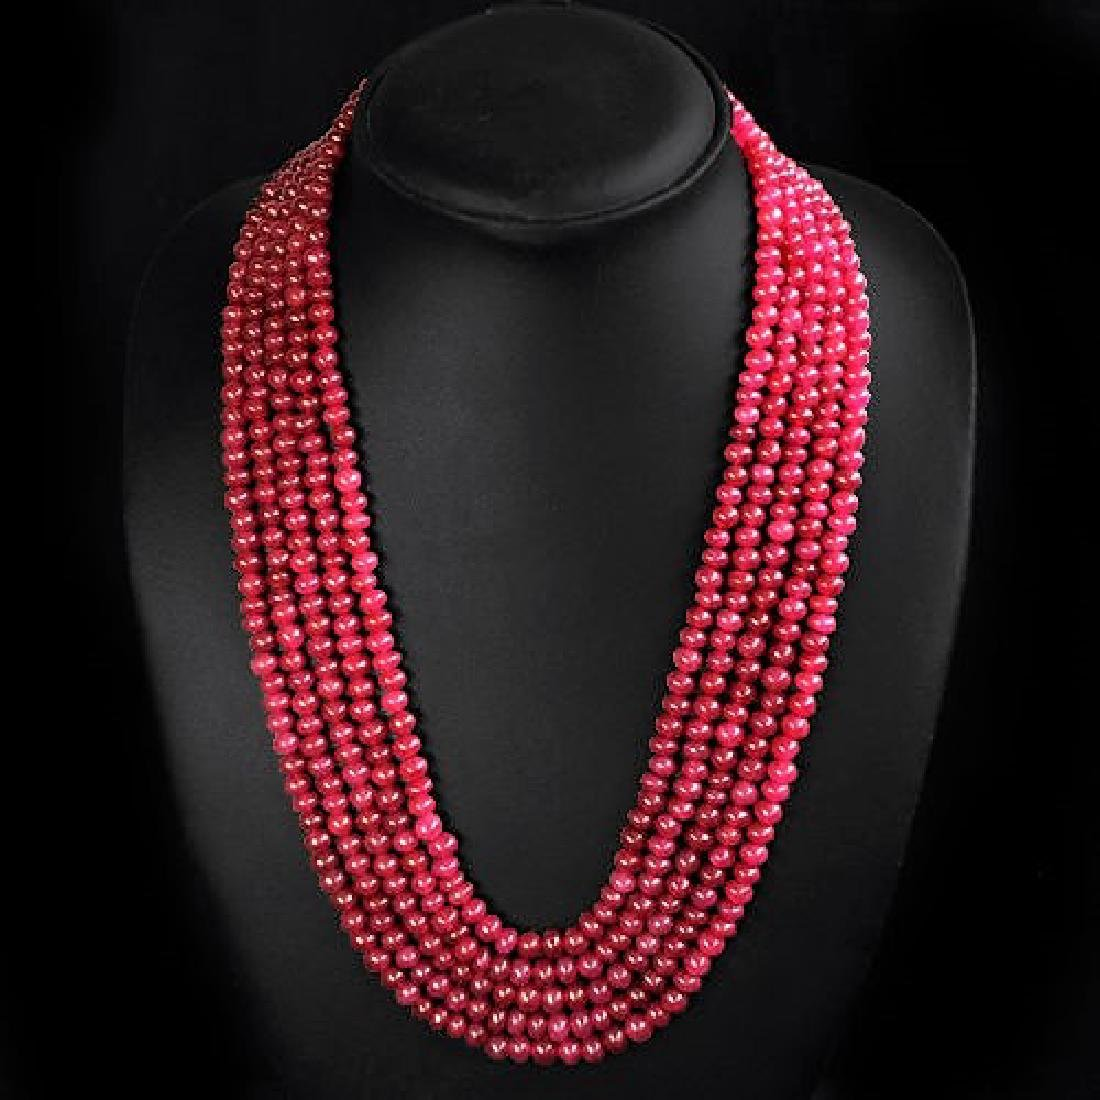 EARTH MINED 5 LINE RED RUBY ROUND BEADS NECKLACE